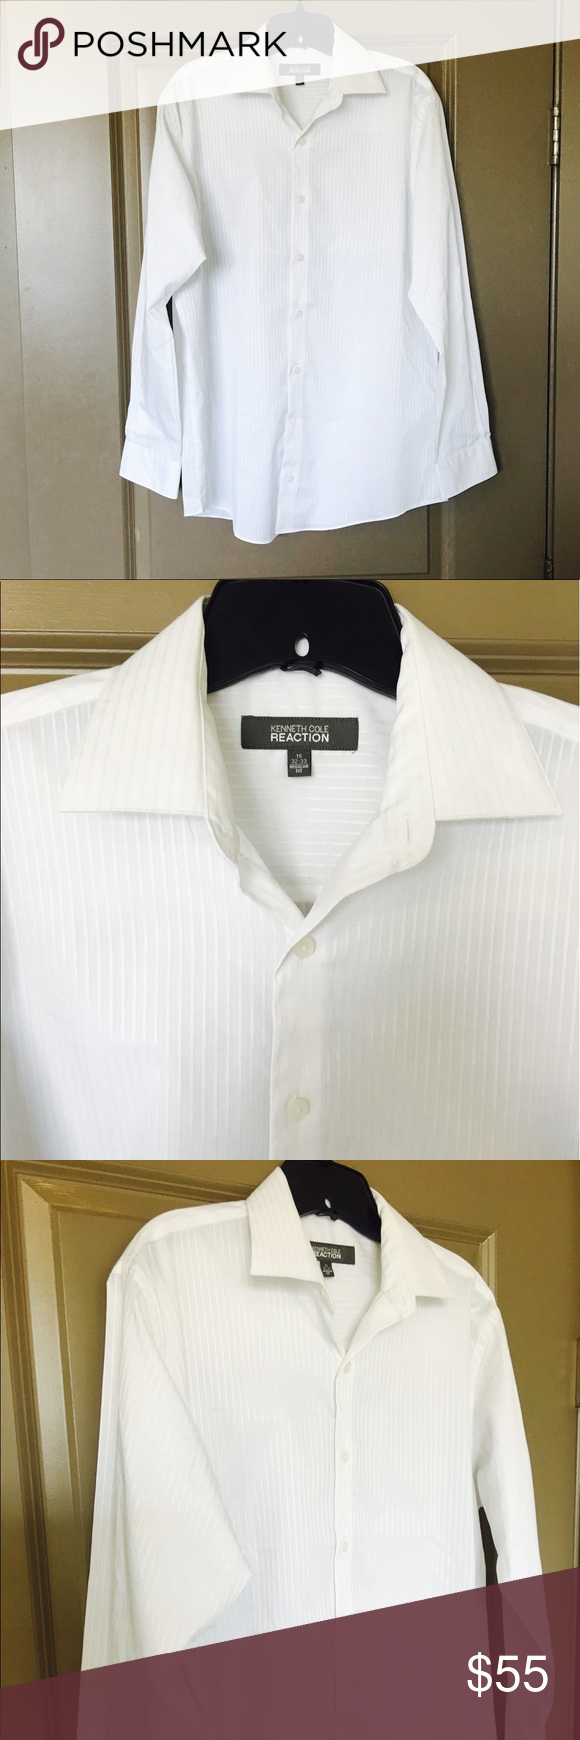 Mens White Dress Shirt On Sale